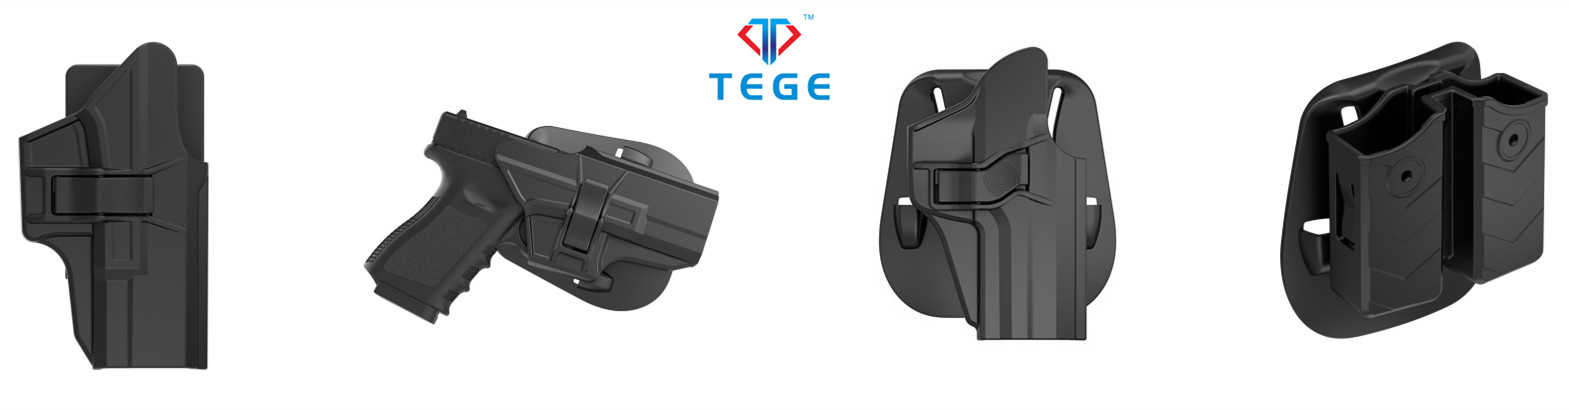 TEGE Polymer Gun Holster For Glock 17/22/31 Gen 12 3 4 5 with Drop Offset Attachment For Police Military